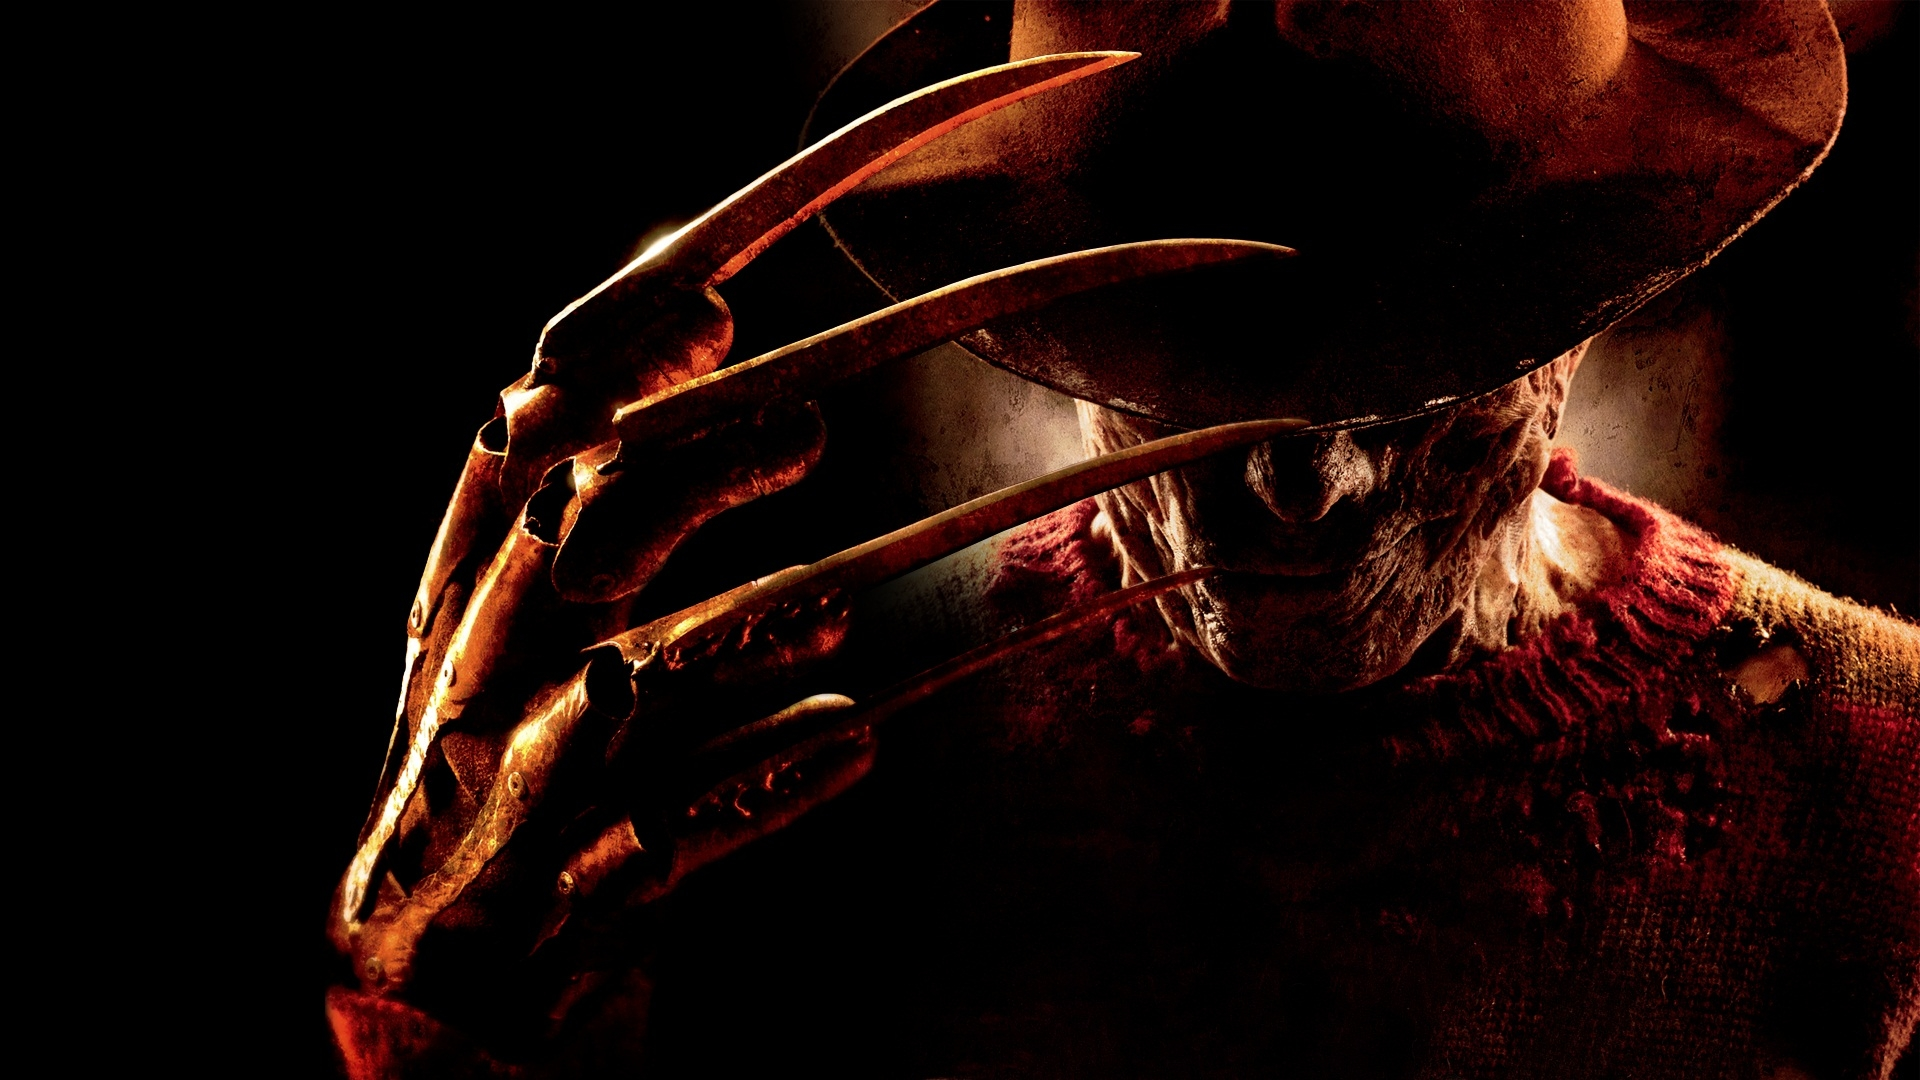 Freddy Krueger Wallpapers High Quality Download 1920x1080